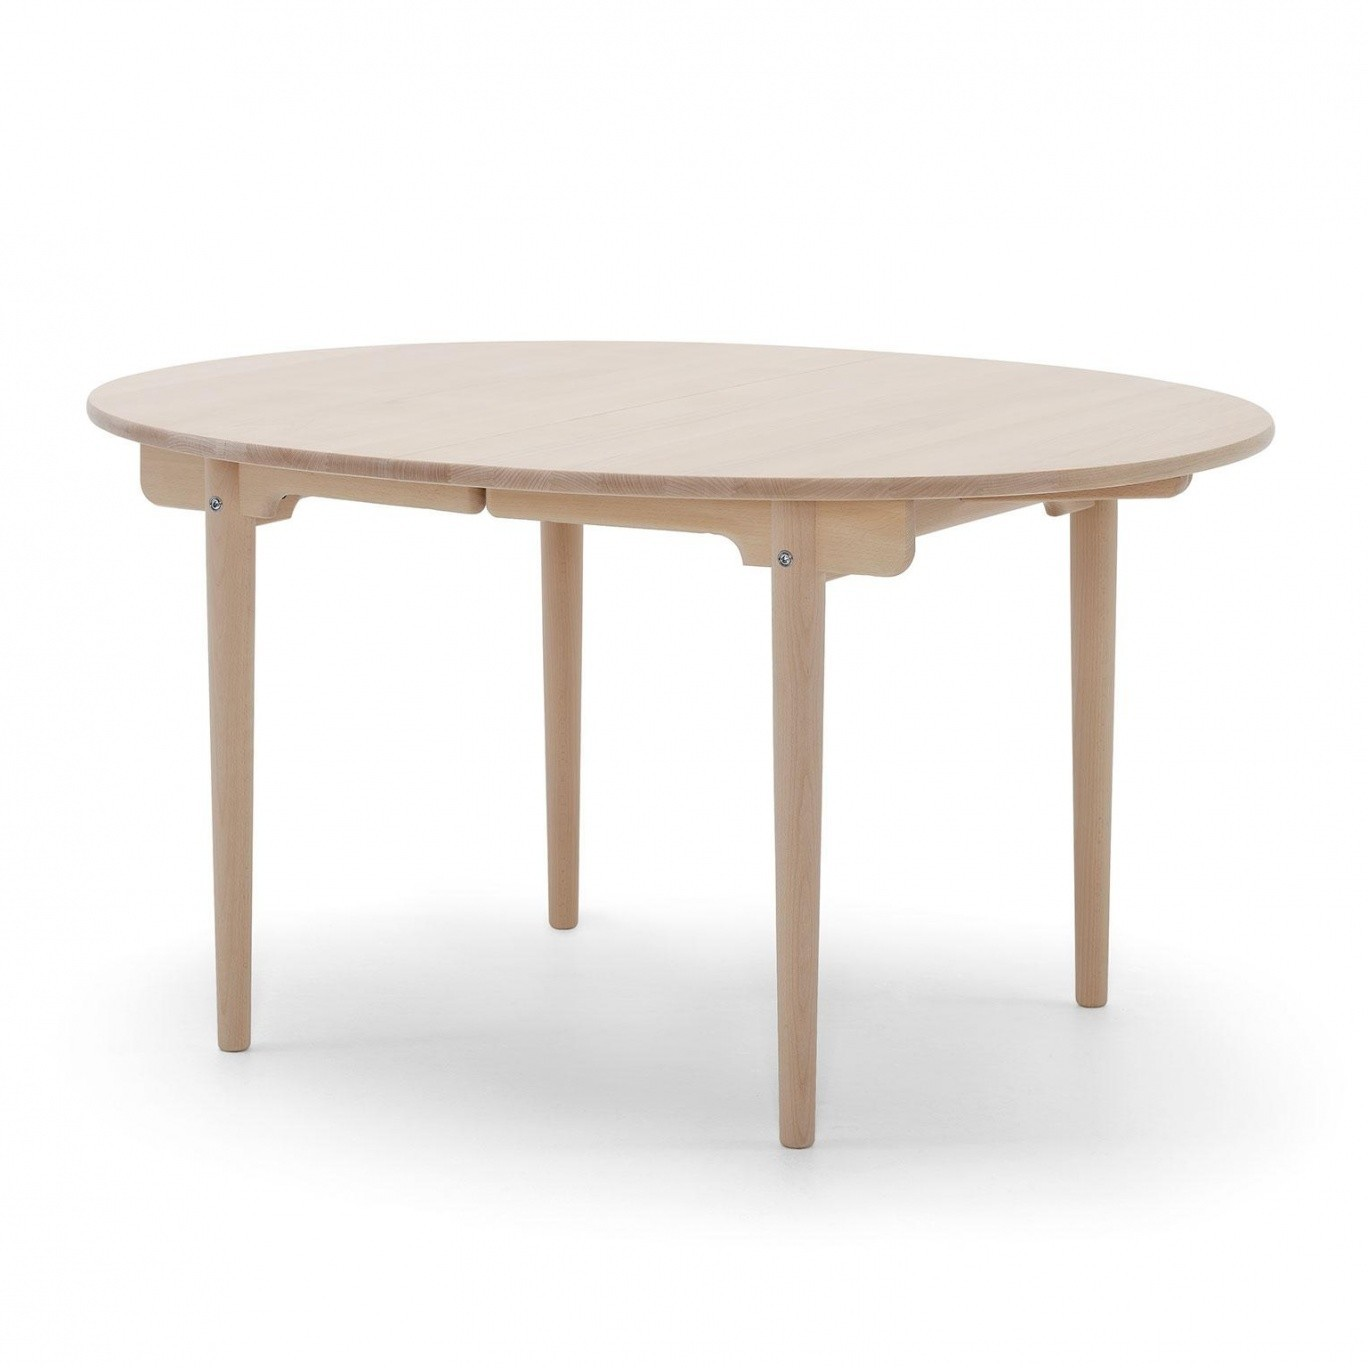 carl hansen ch337 dining table extendable ambientedirect rh ambientedirect com